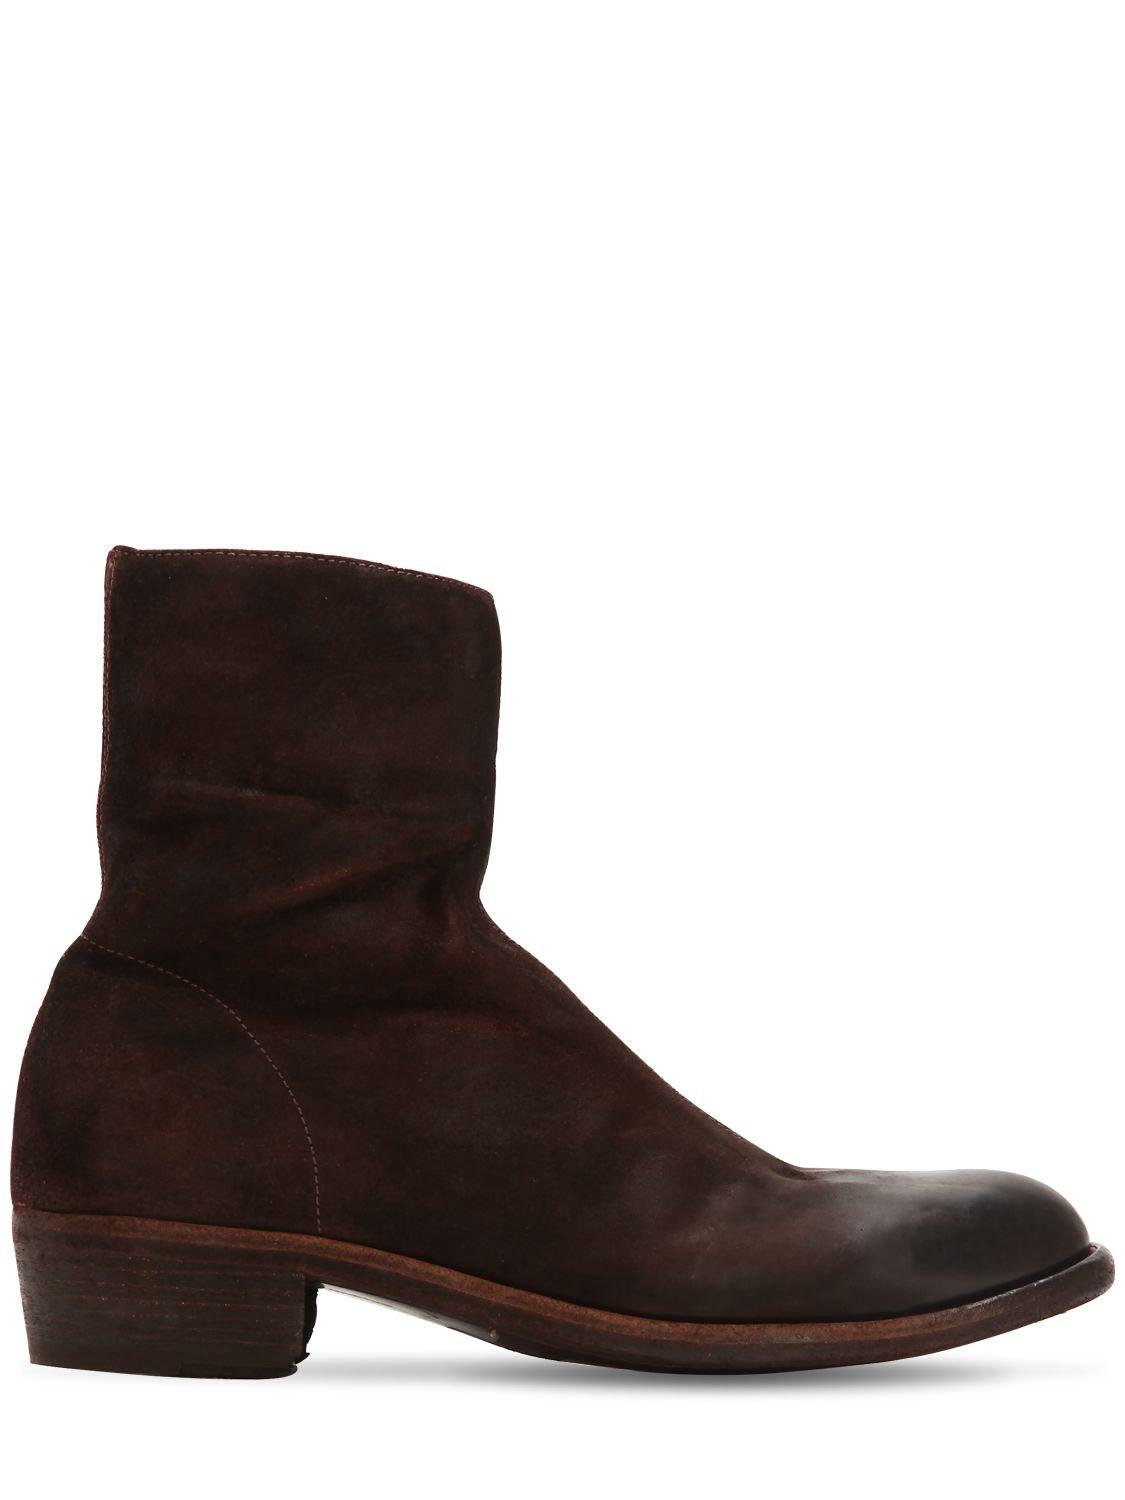 cd8d927d2d2b5 Lyst - Officine Creative Ponti 001 Reversed Leather Boots in Brown ...